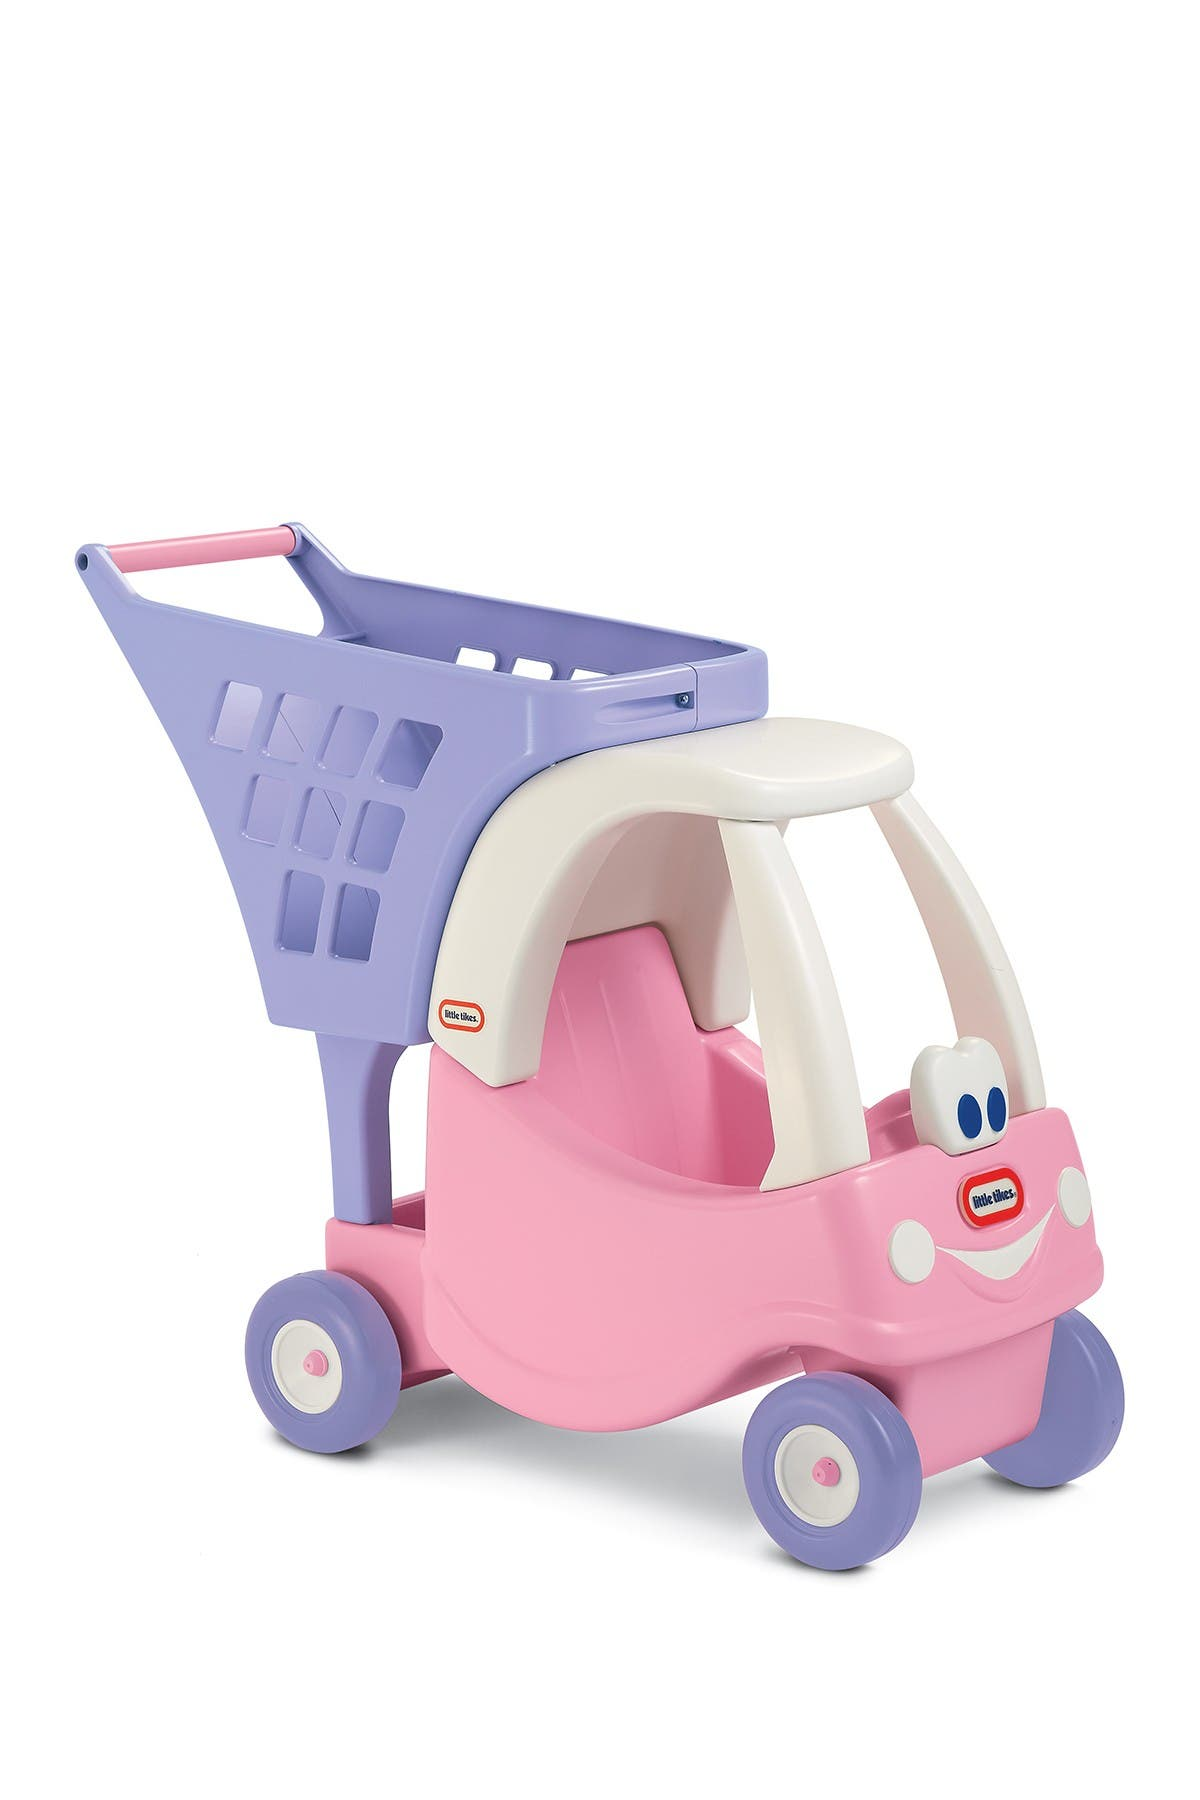 Little Tikes Princess Cozy Coupe Shopping Cart Nordstrom Rack